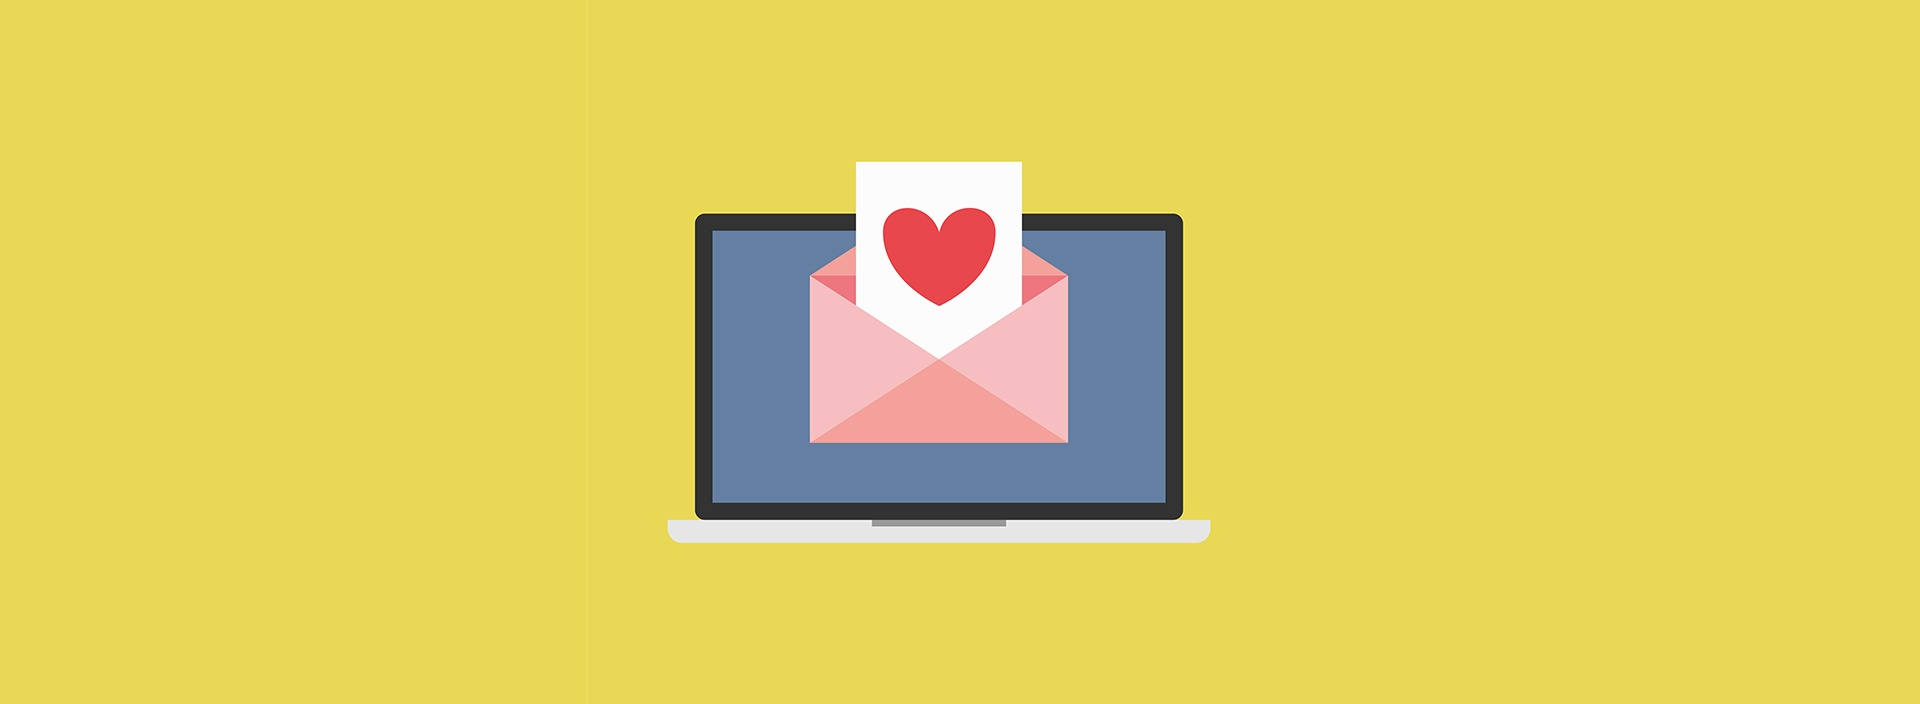 Email Marketing Attention Spans are Climbing! Here's Proof. [Infographic]